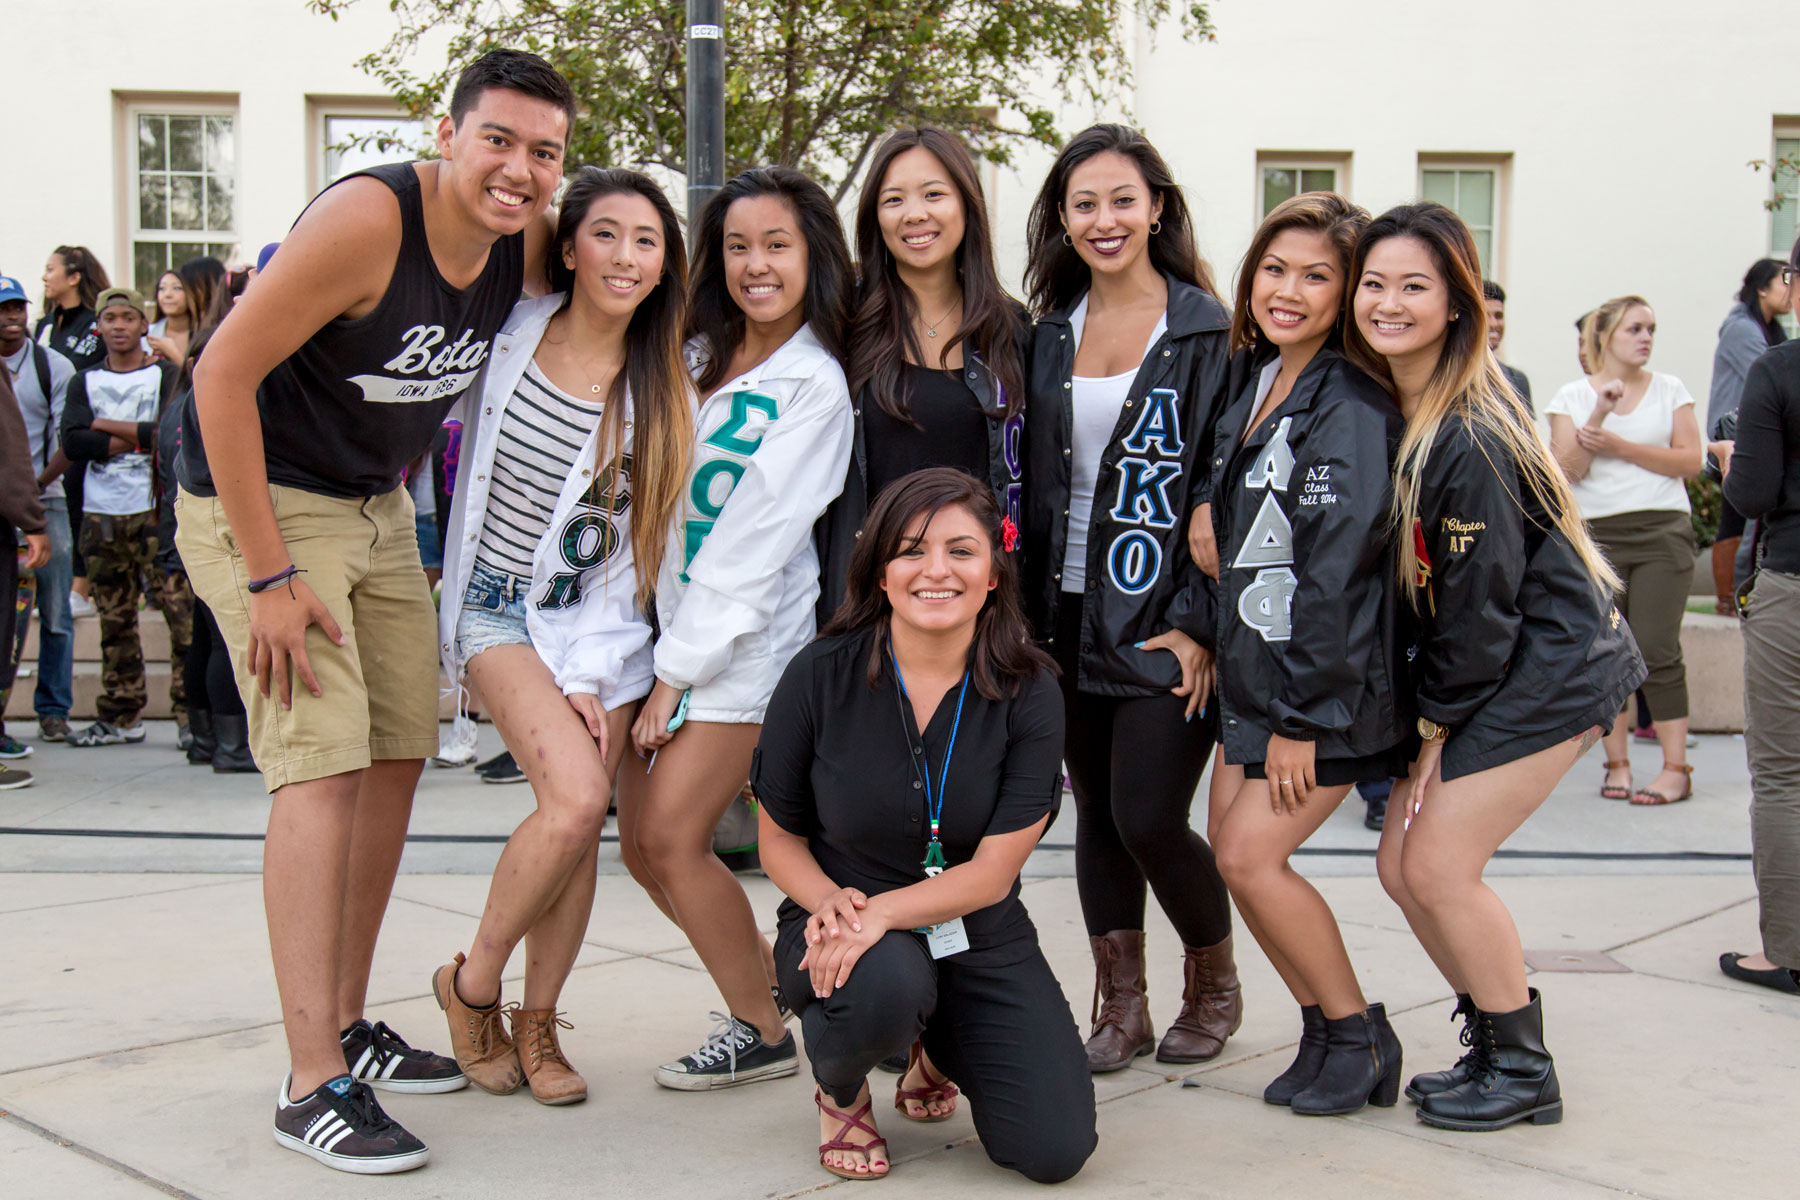 Council of fraternities and sororities event at SJSU.